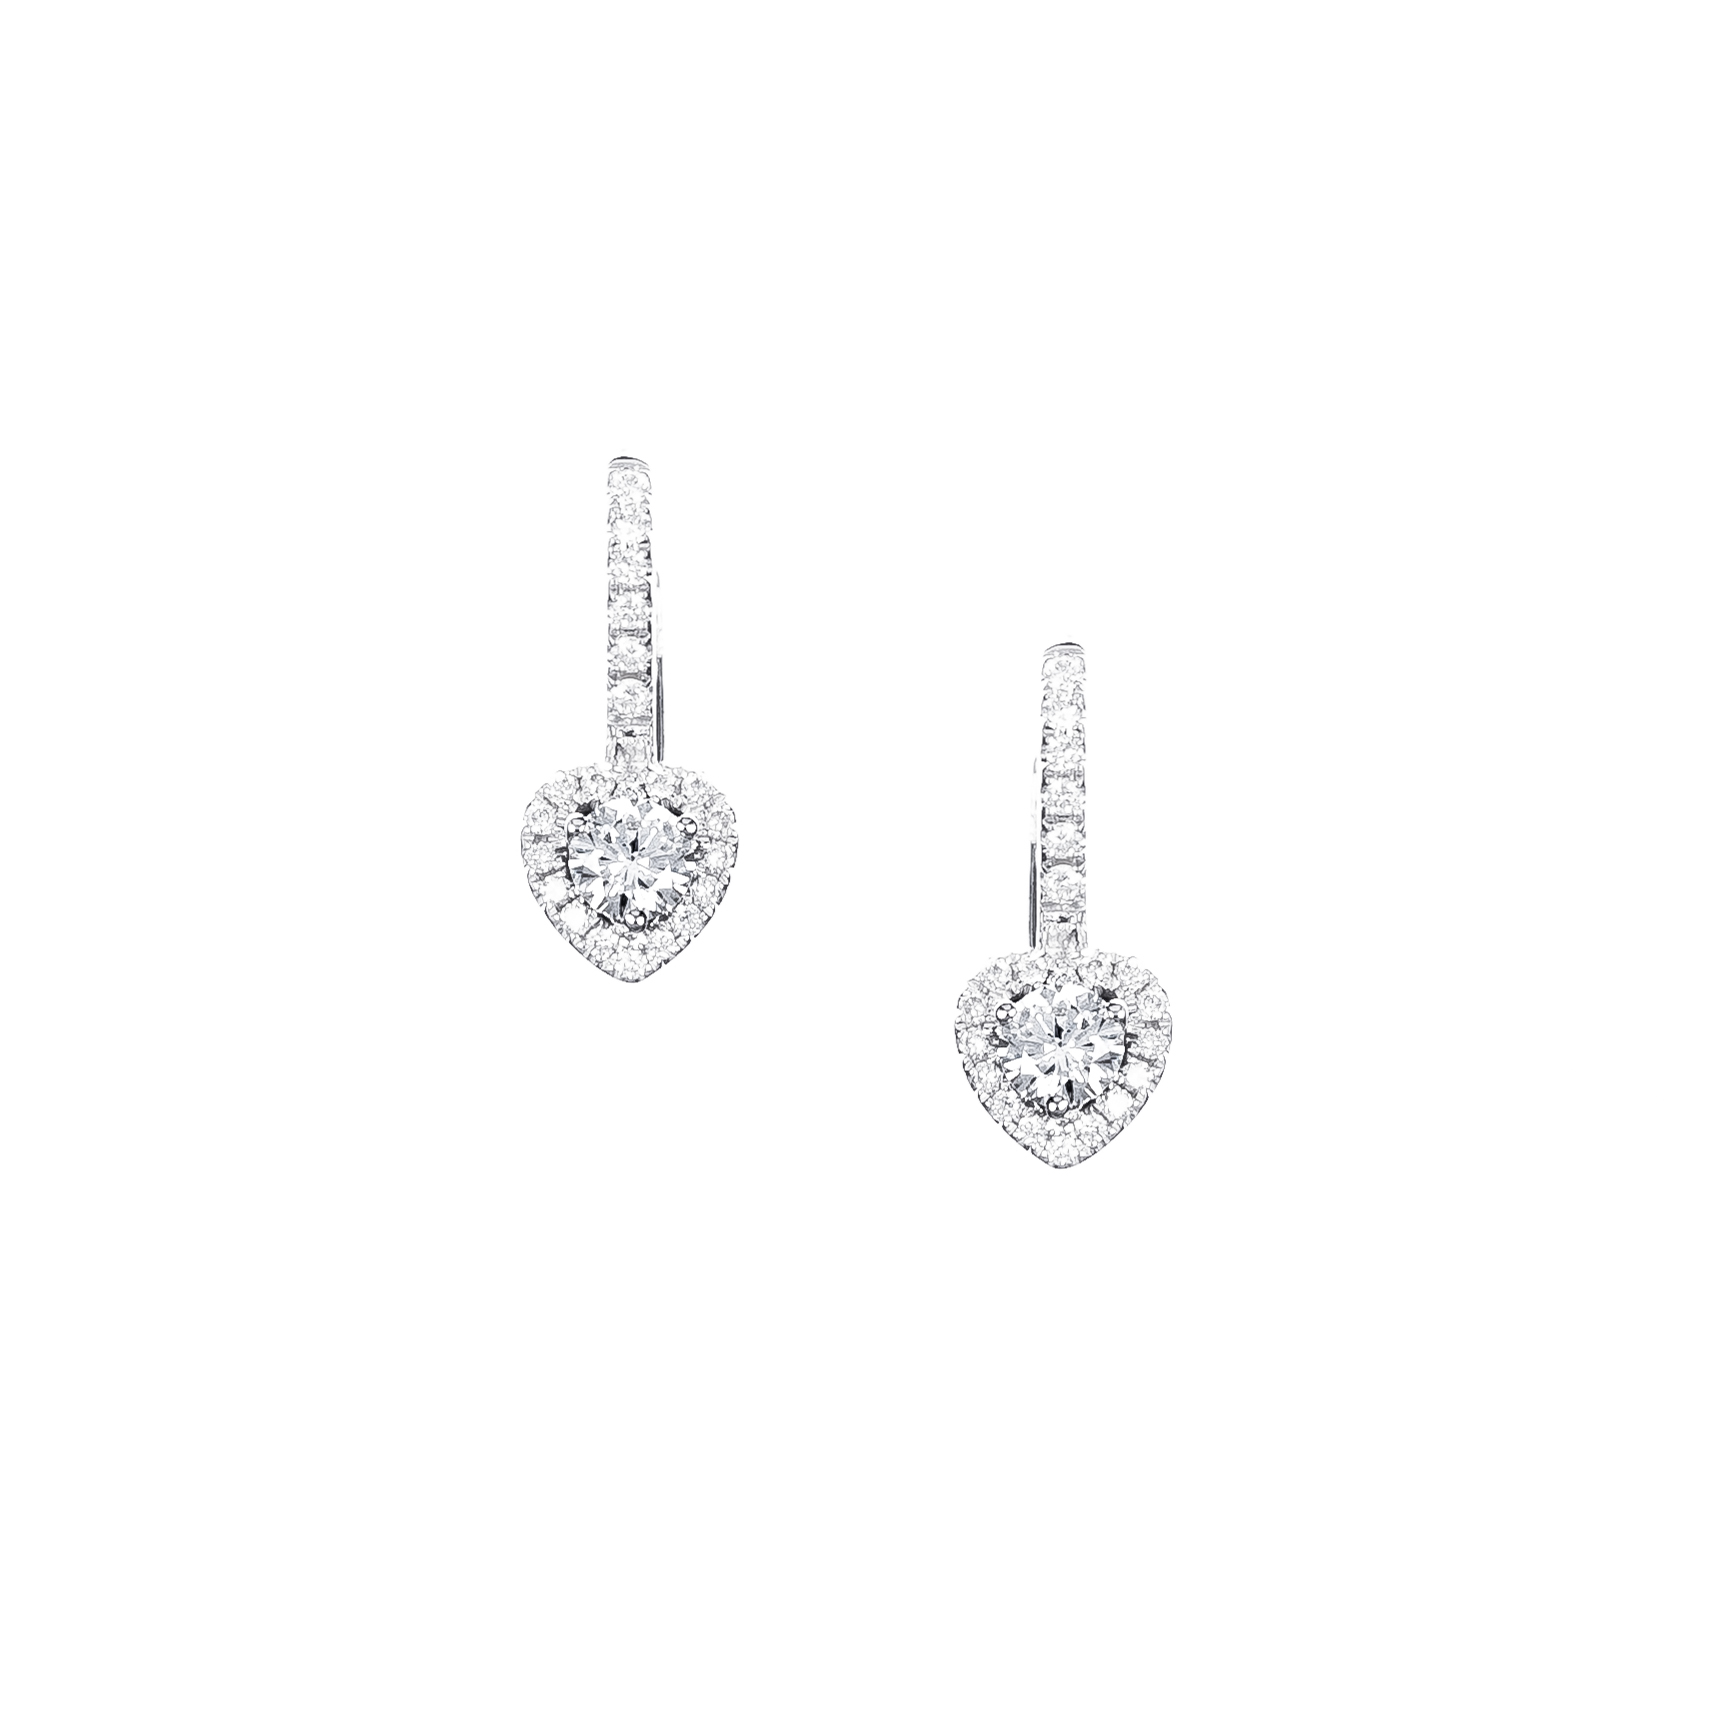 heart shape diamond earrings in 18ct w/g